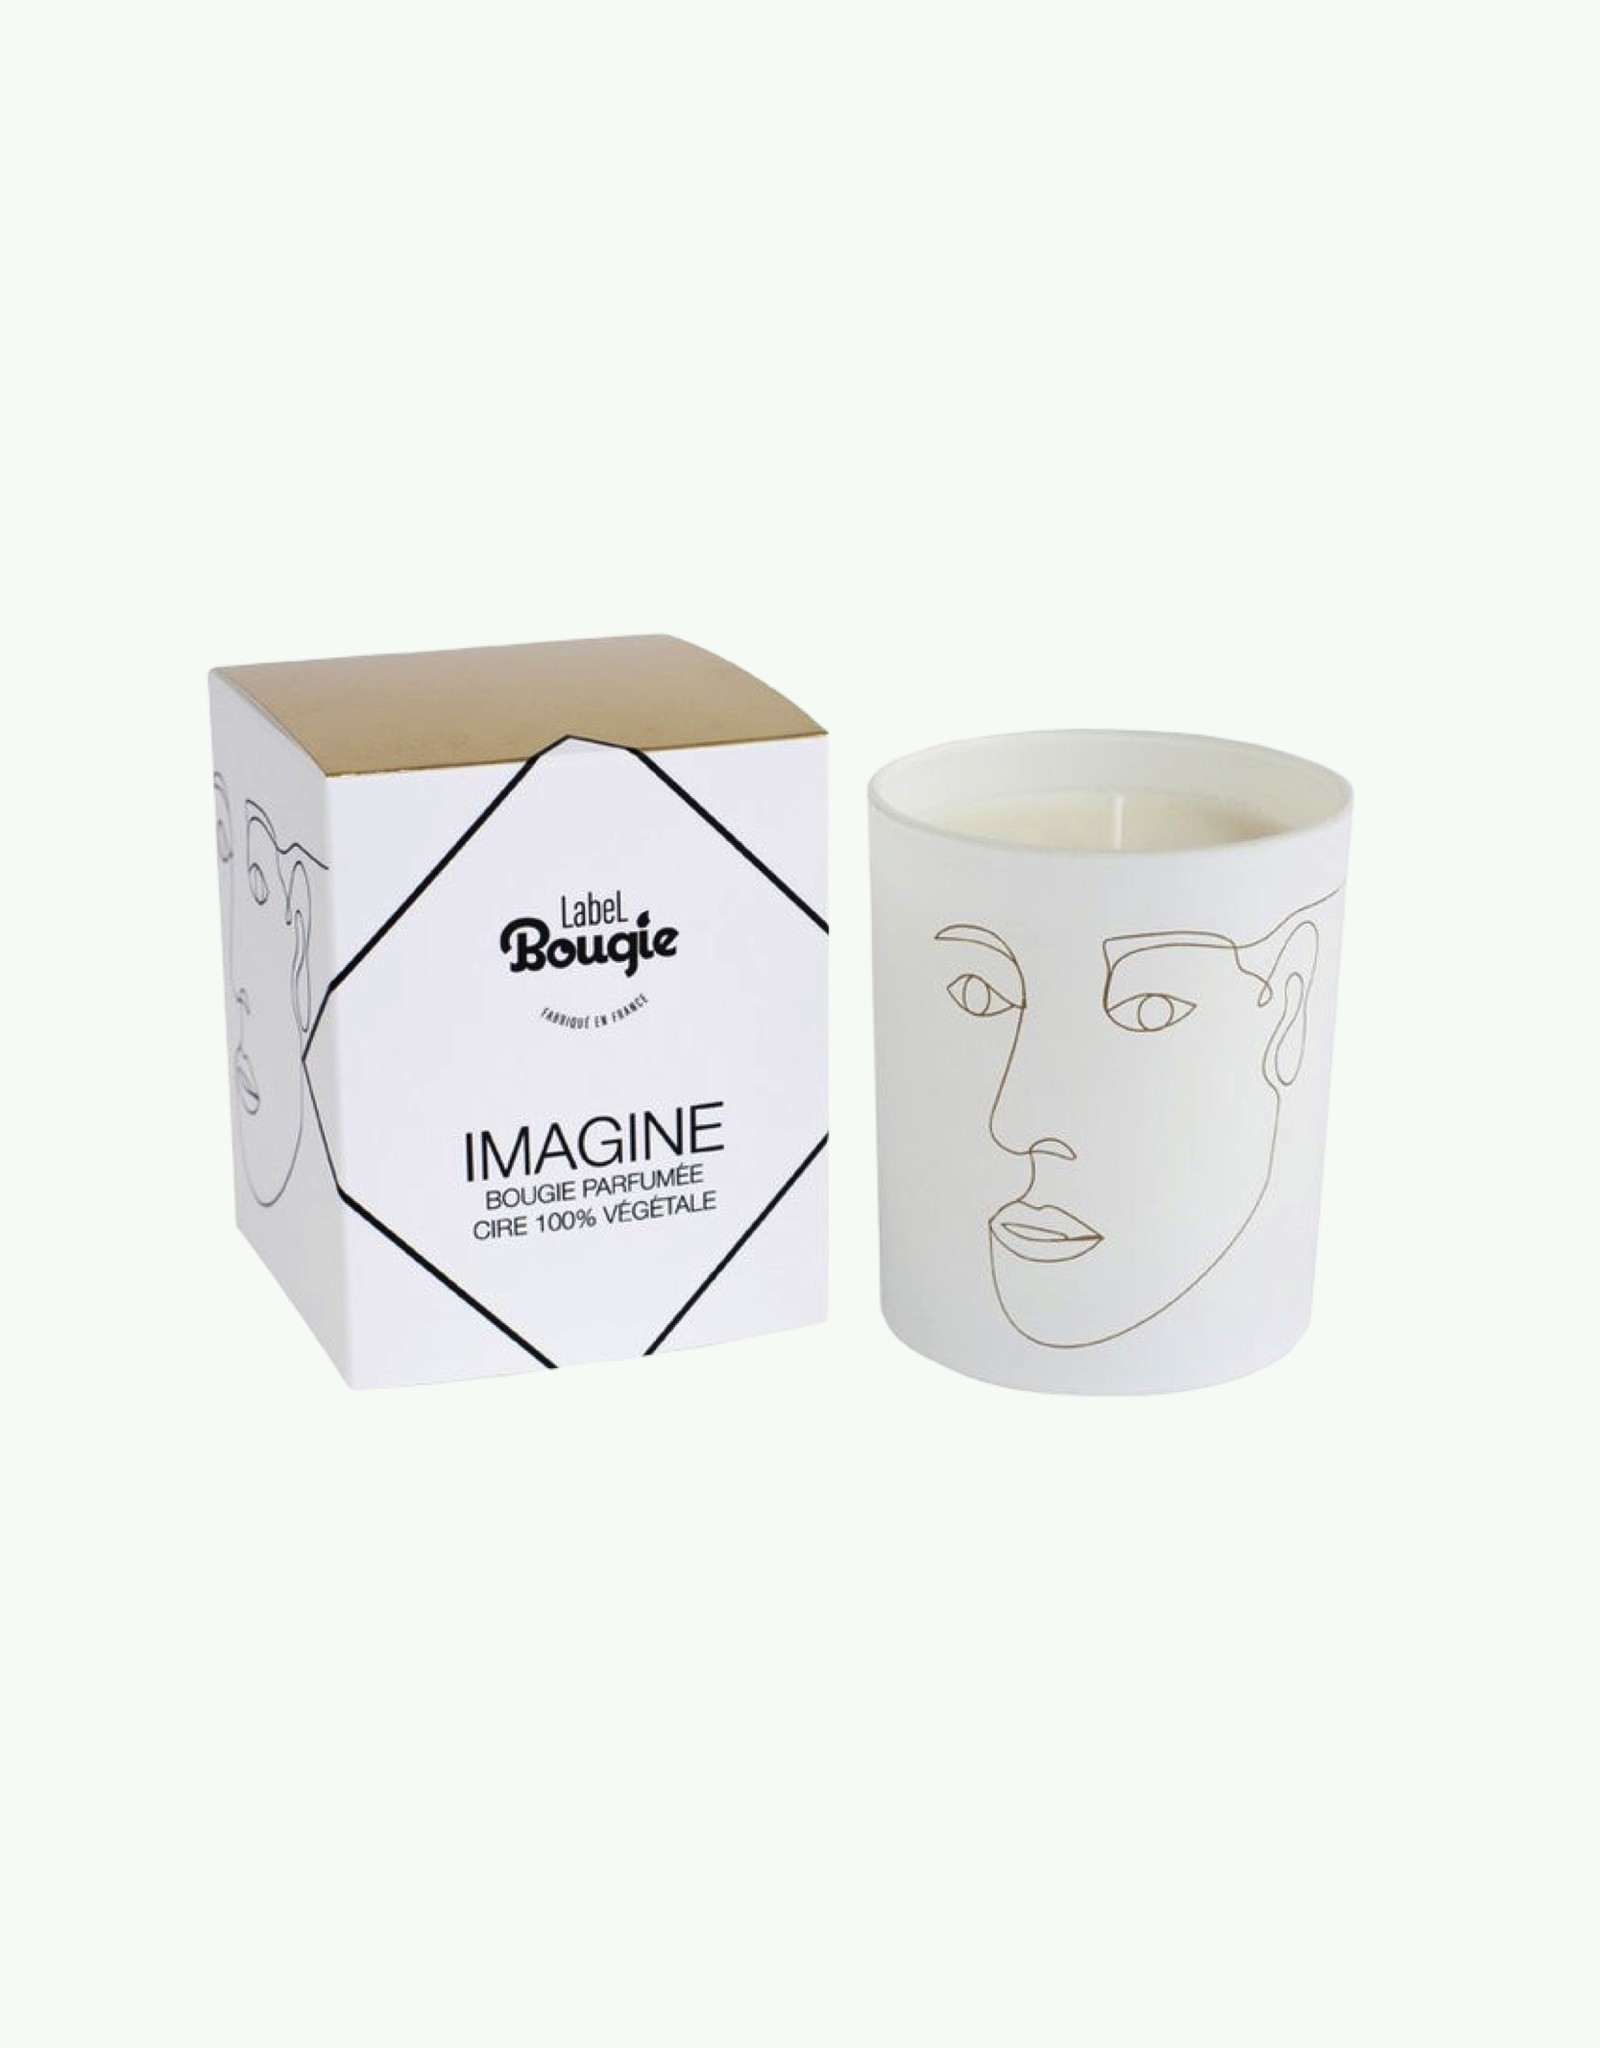 Label Bougie Label Bougie - Imagine - Scented Candle 180 gr